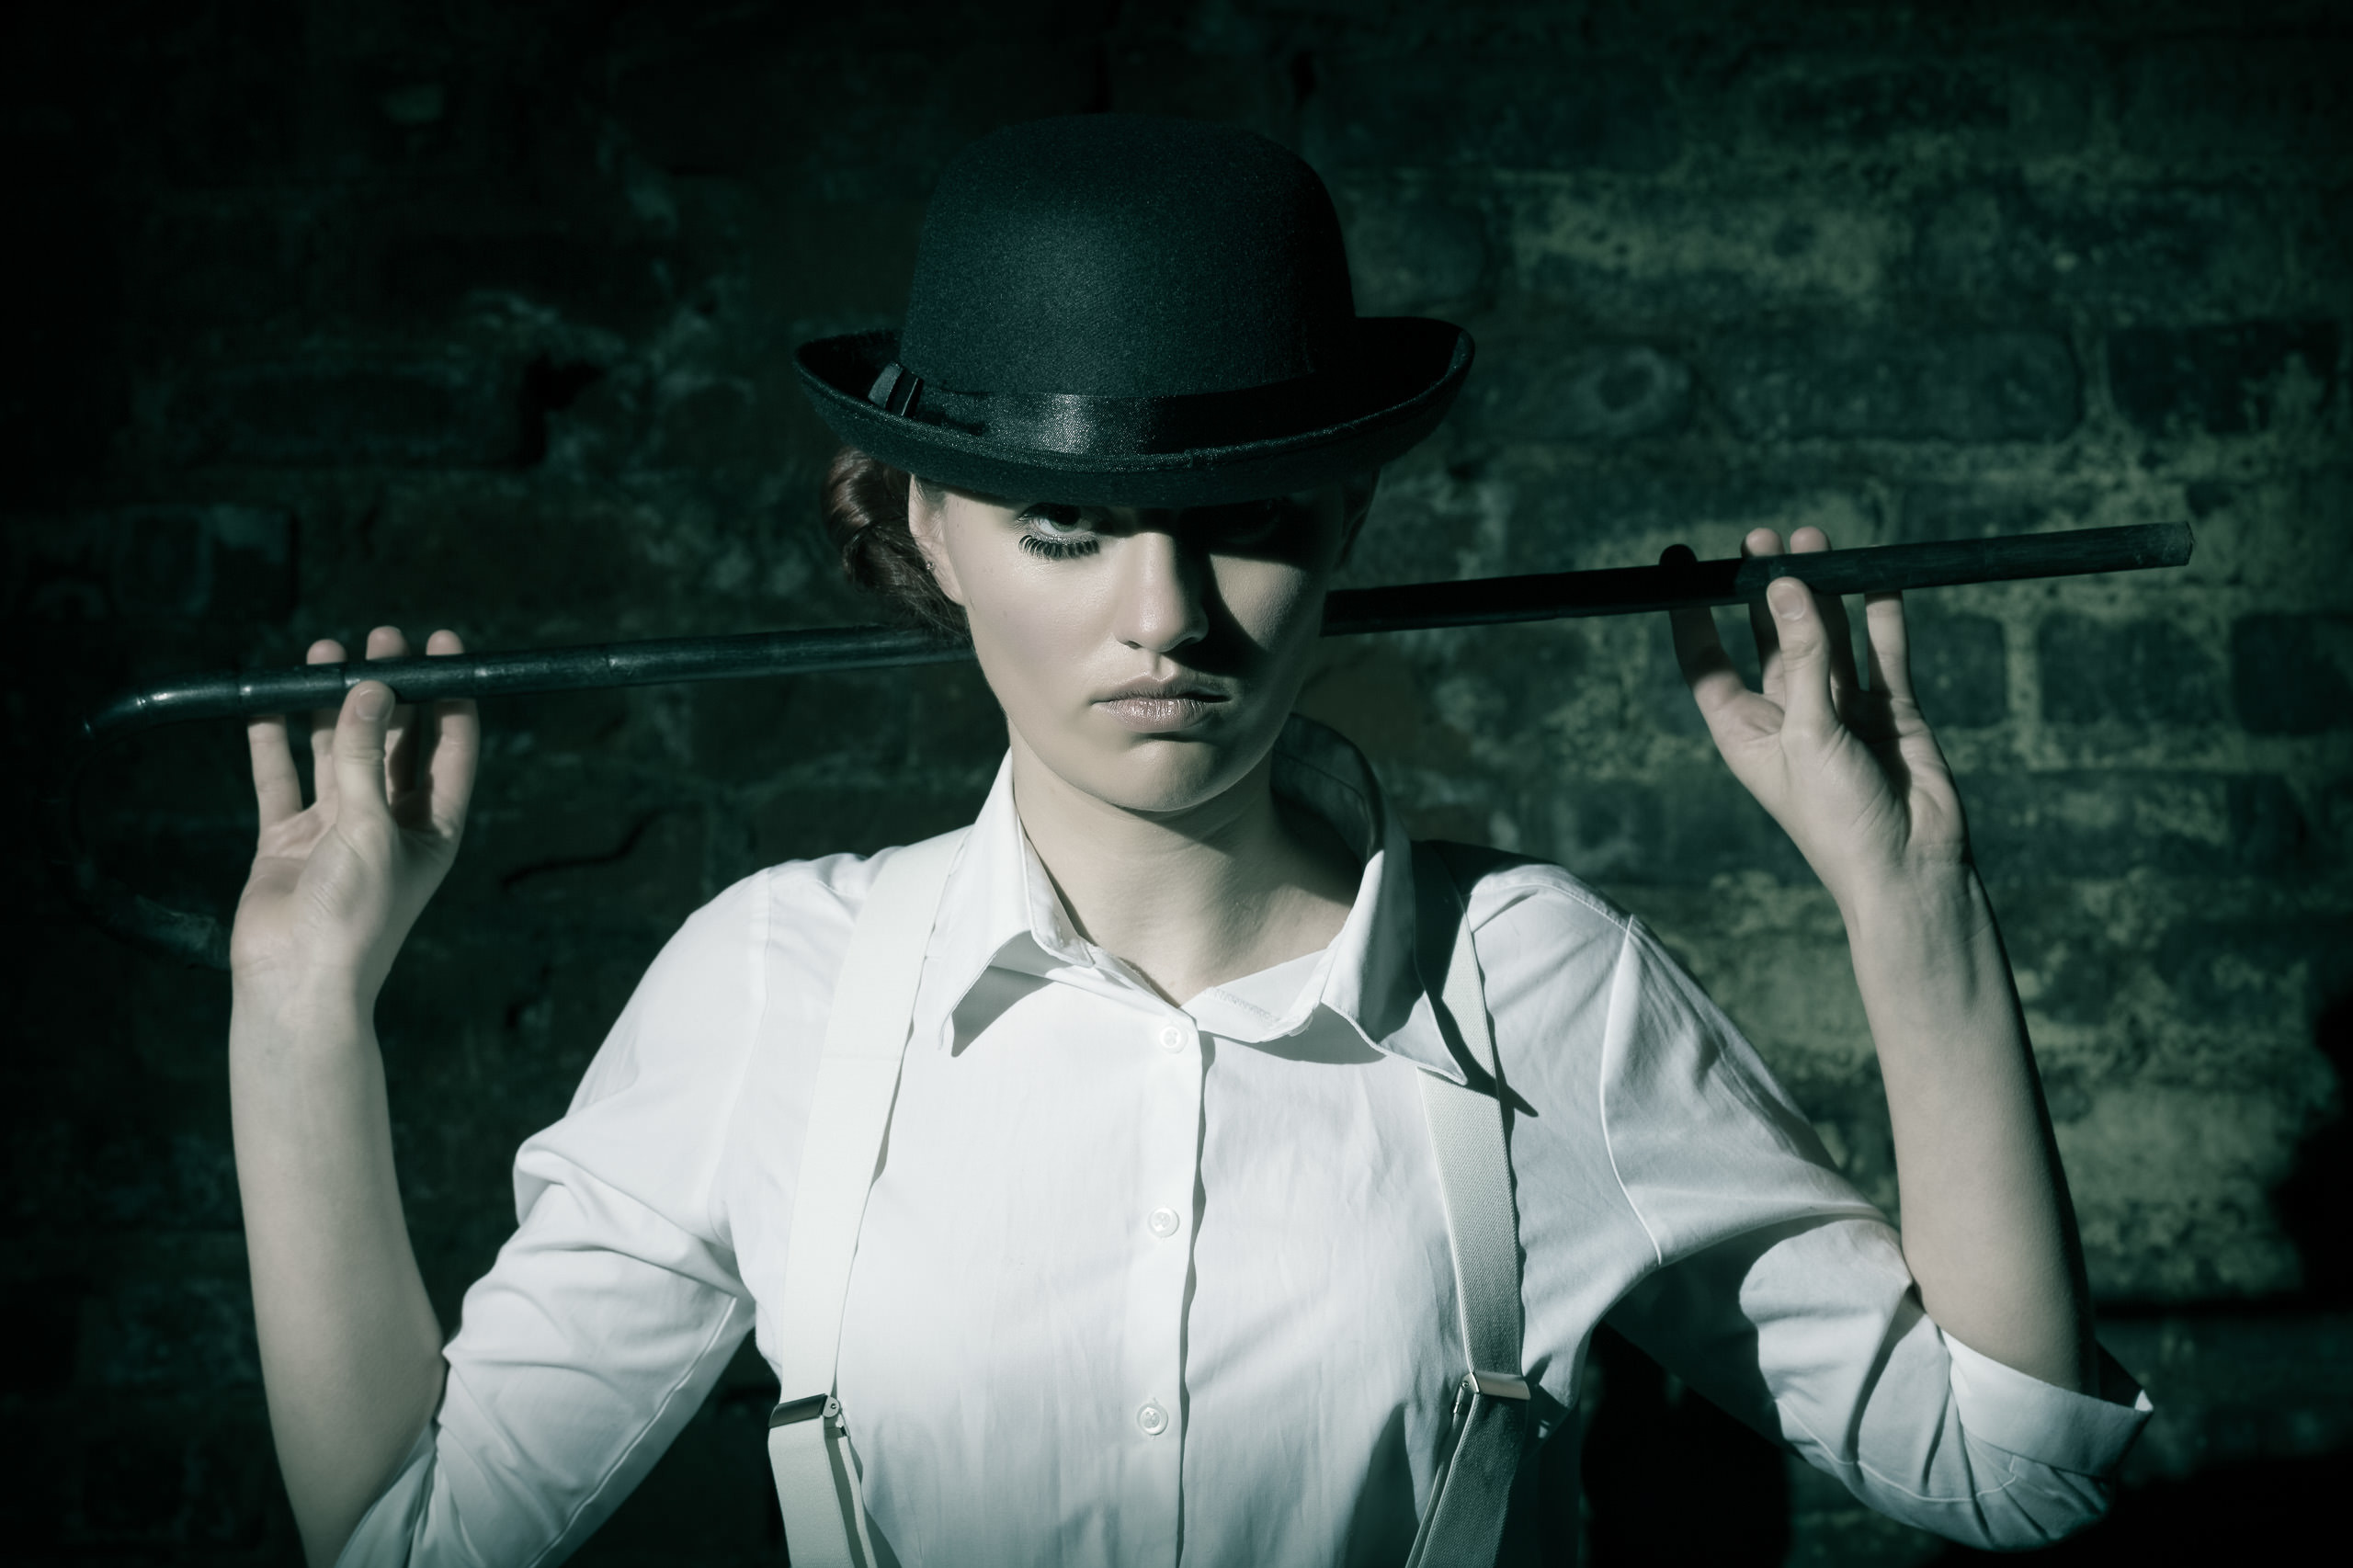 artistic portrait on the Clockwork Orange theme with a Scottish actress